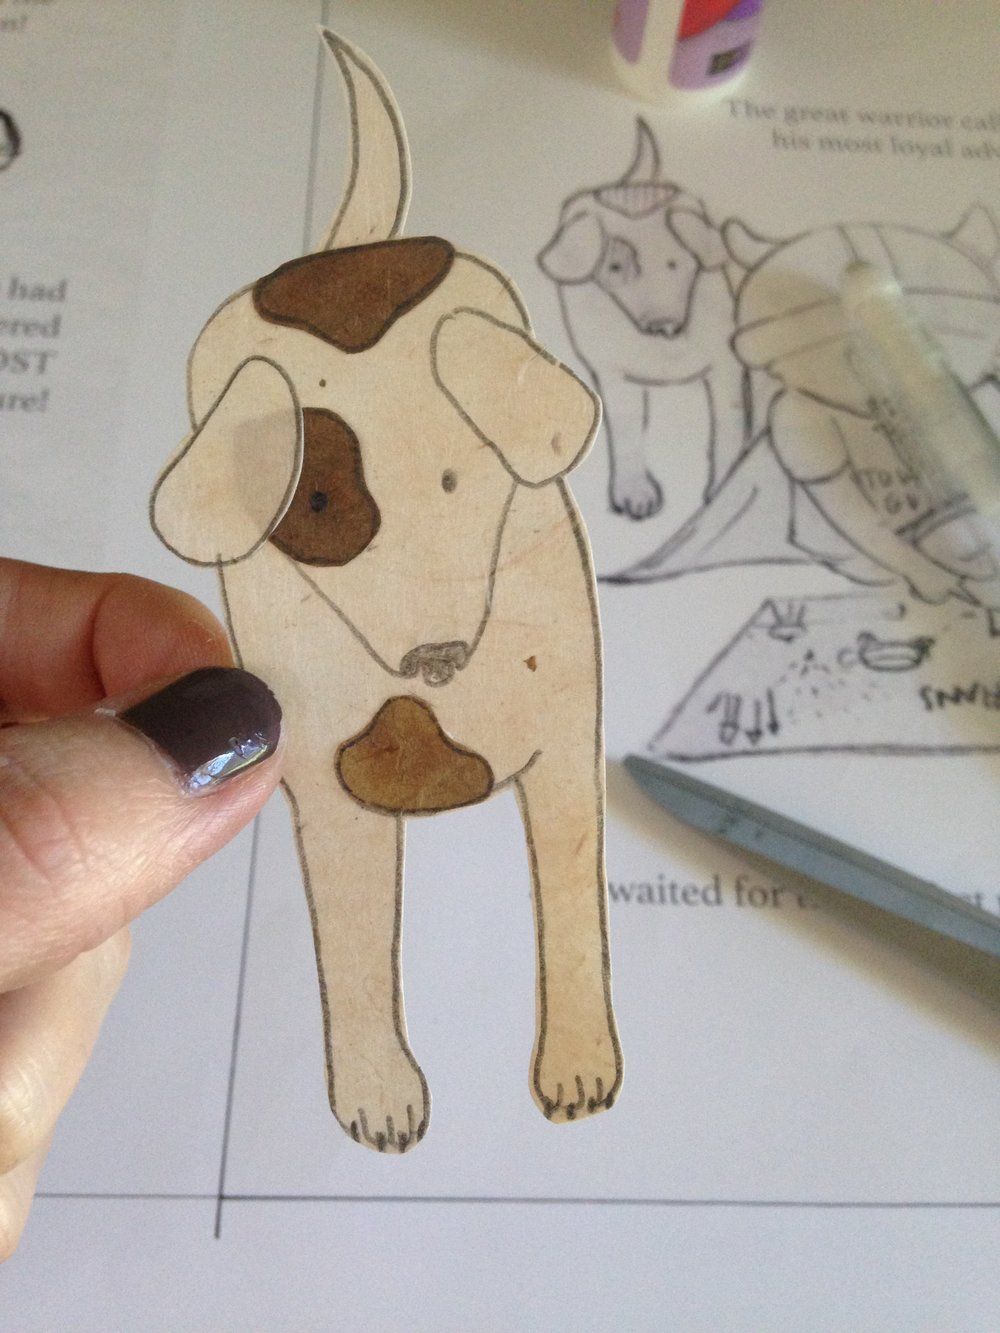 Illustrating my own dog Sally into the book.